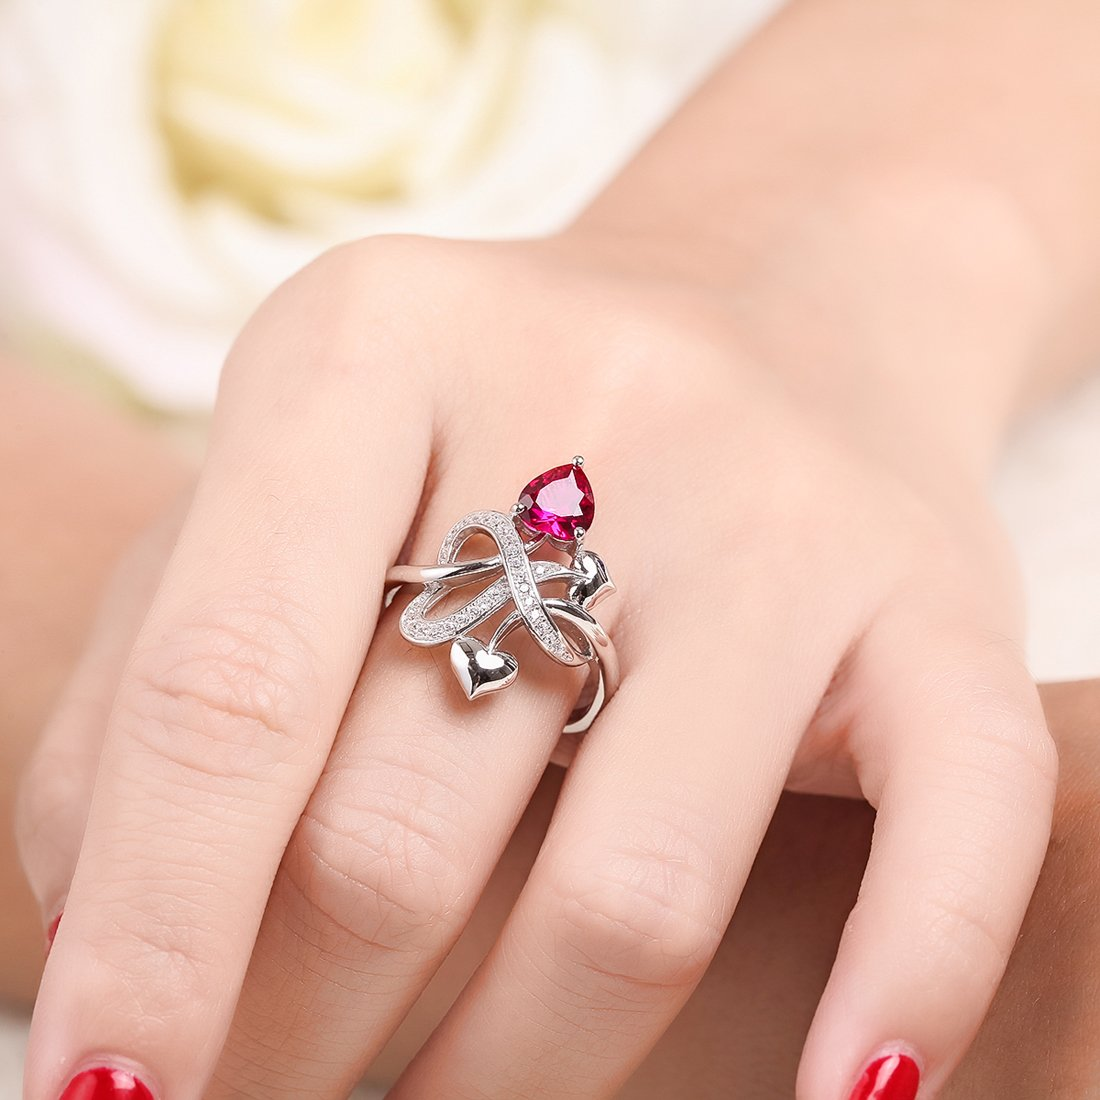 Merthus Womens 925 Sterling Silver Created Ruby Heart Love Knot Ring by Merthus (Image #2)